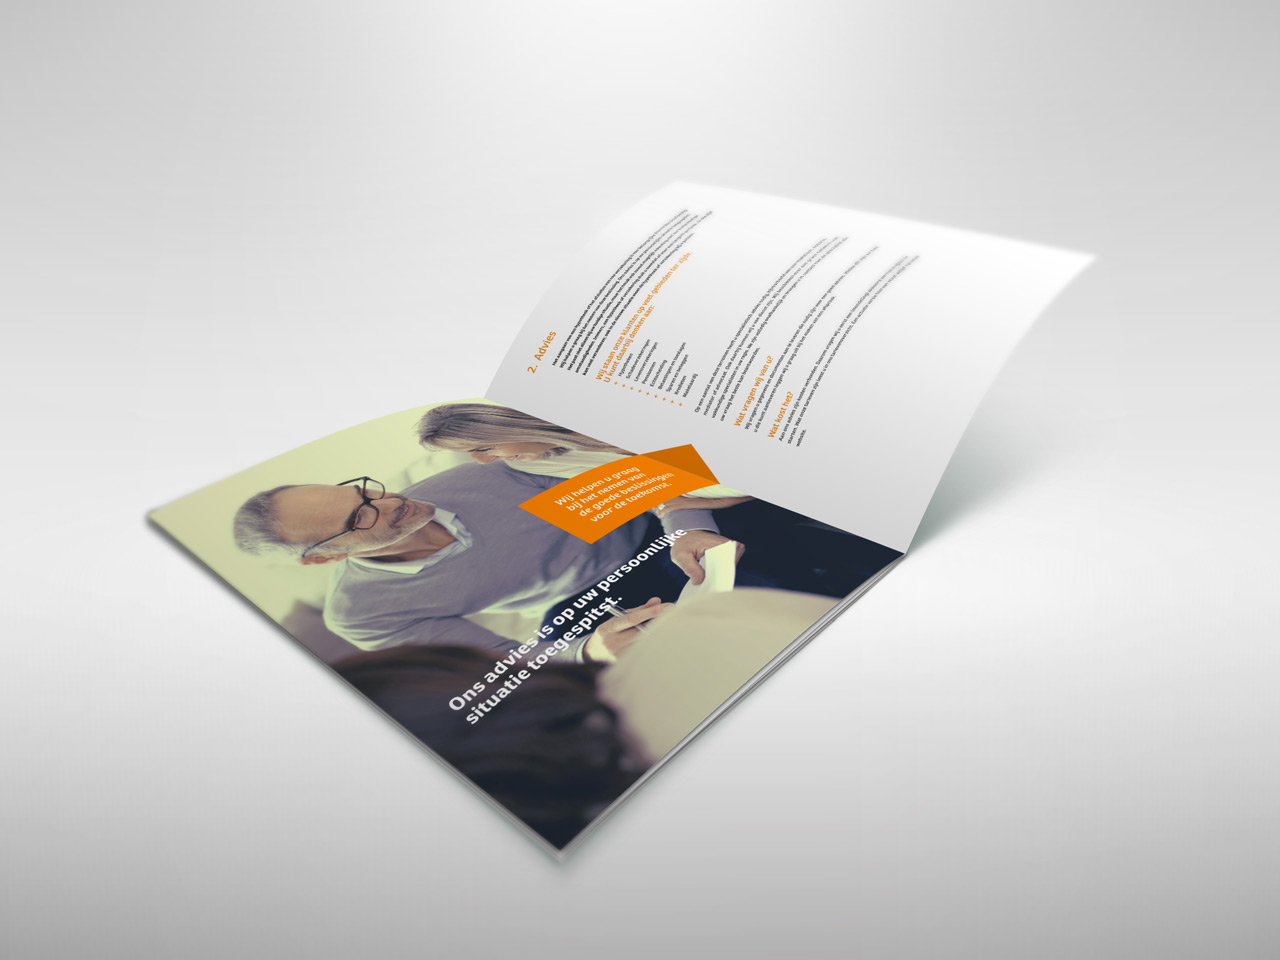 Brochure-Inside-Waterman-Raad-en-Daad-2